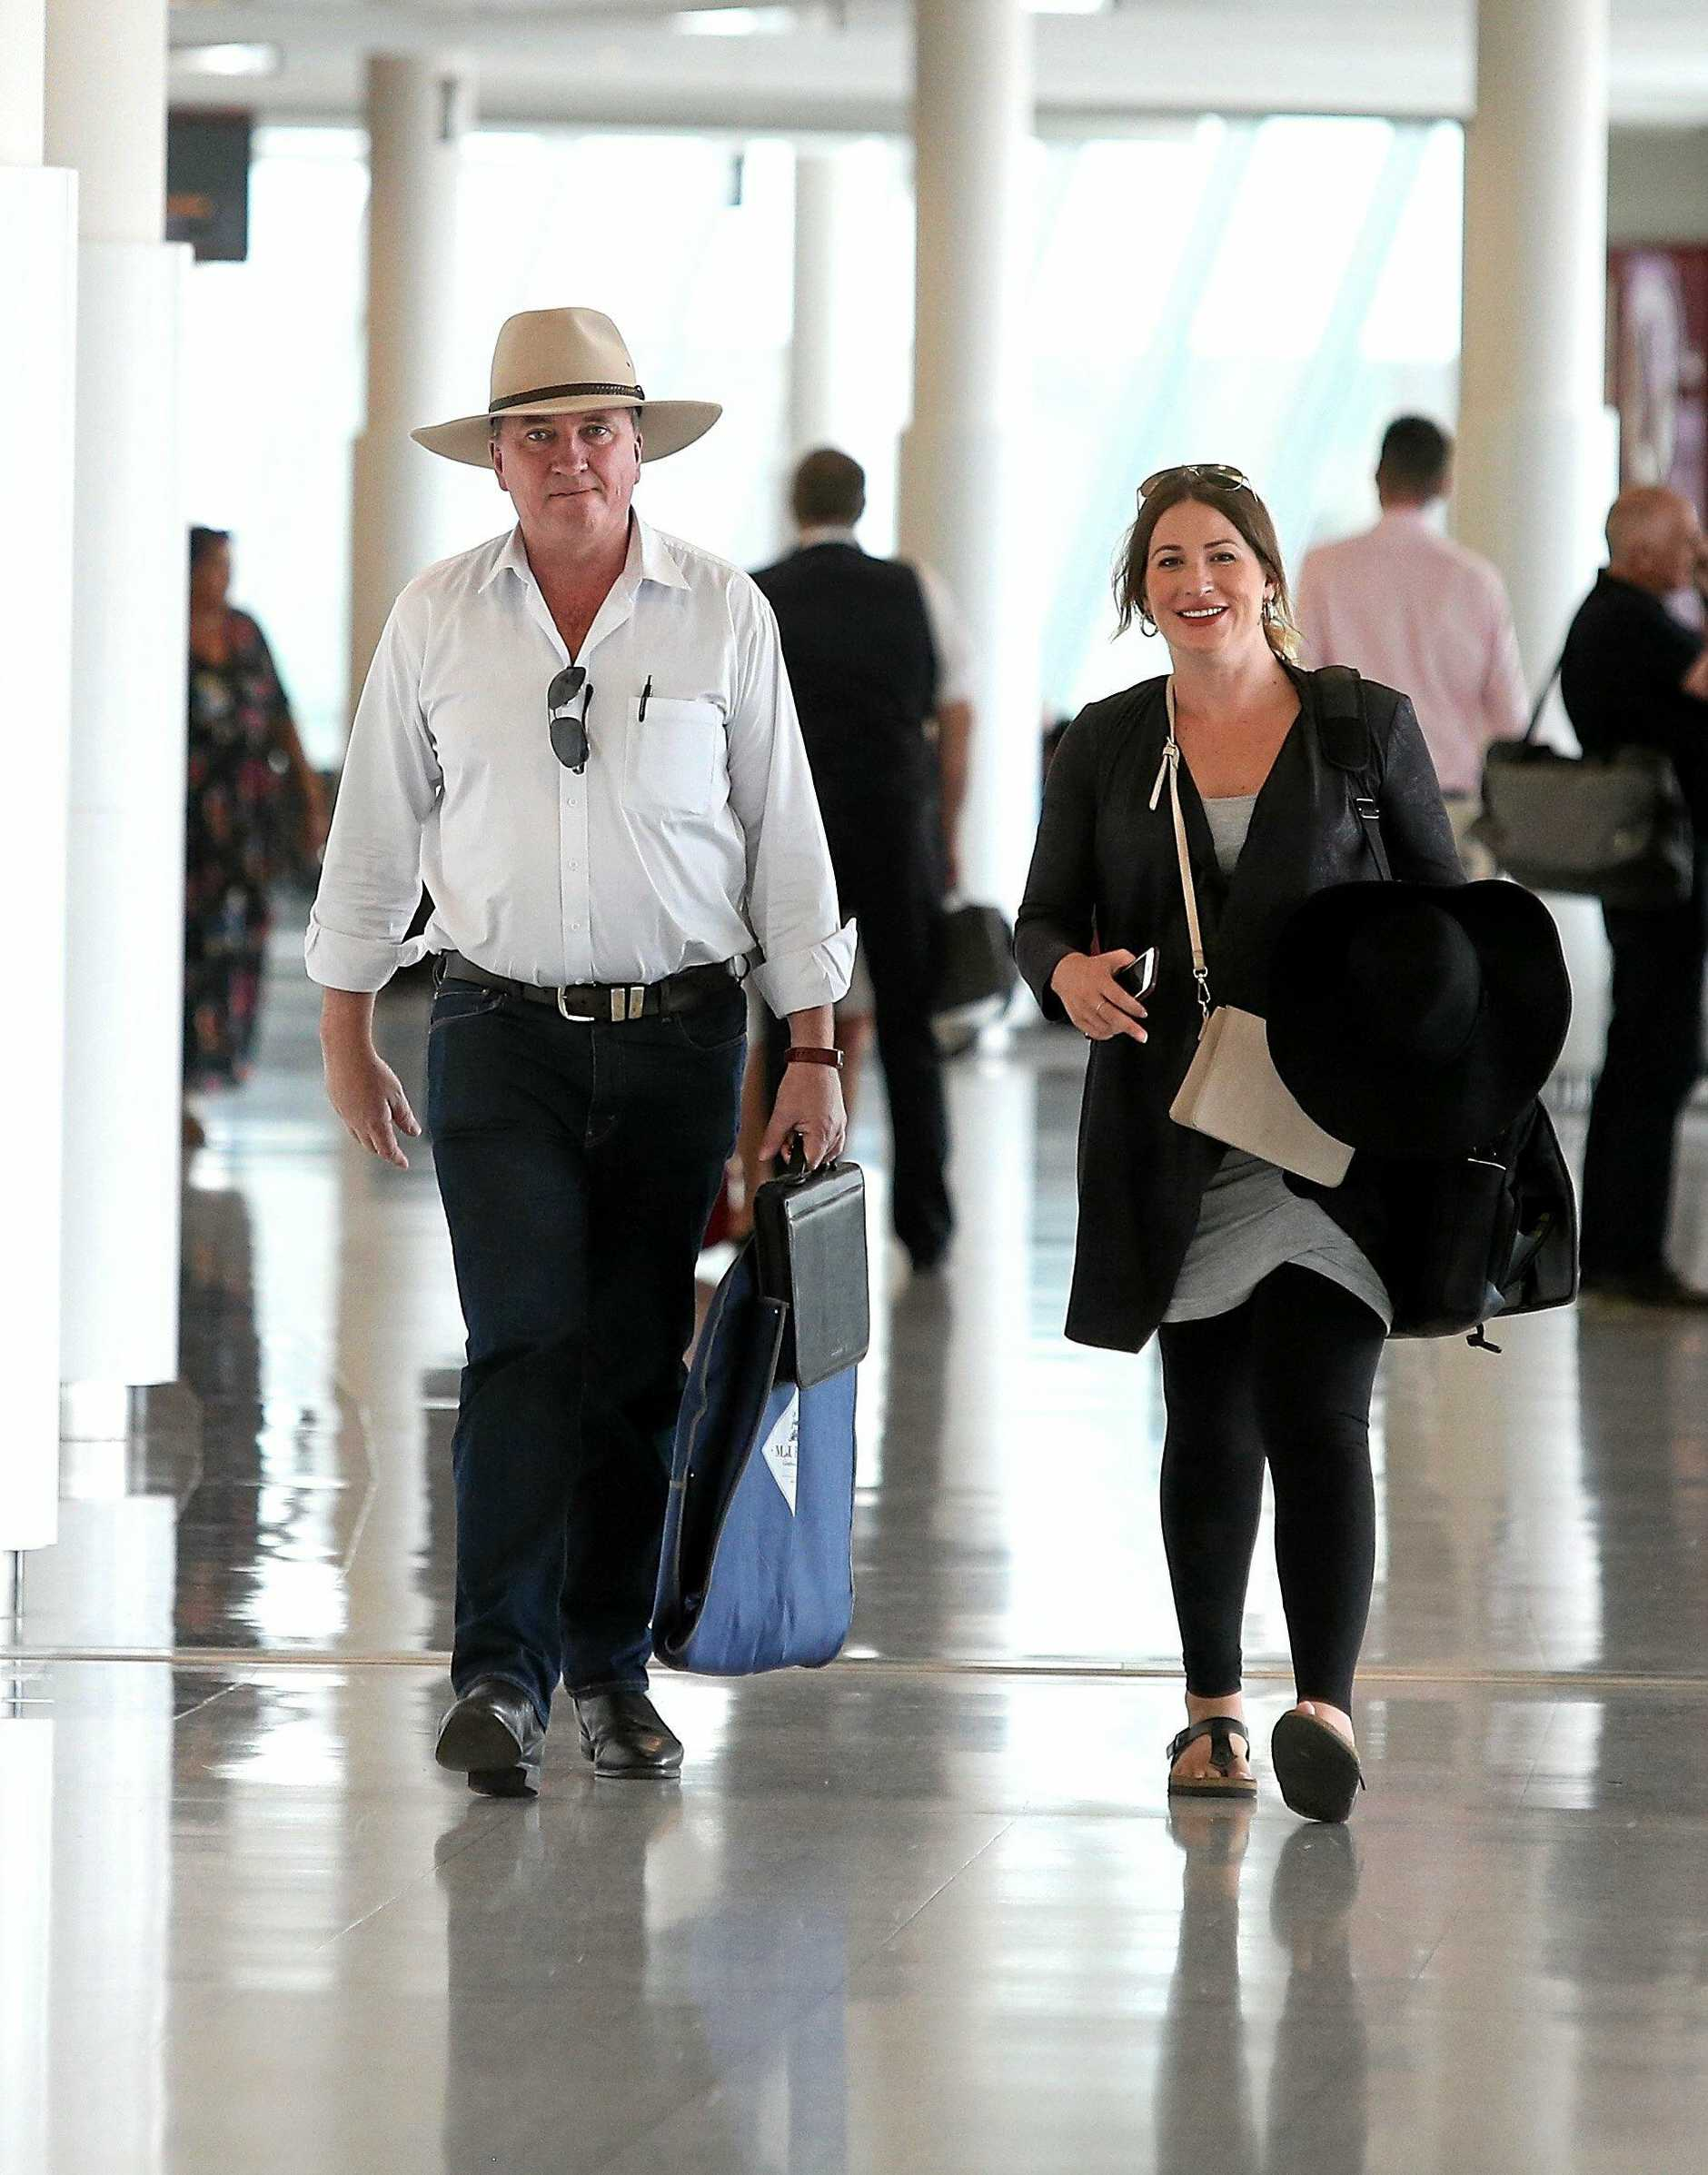 EMBARGOED FOR PRINT - NOT FOR ONLINE TIL MARCH 3, 2018 Former Deputy Prime Minister Barnaby Joyce and his pregnant partner Vikki Campion pictured at Canberra airport. Picture: Kym Smith